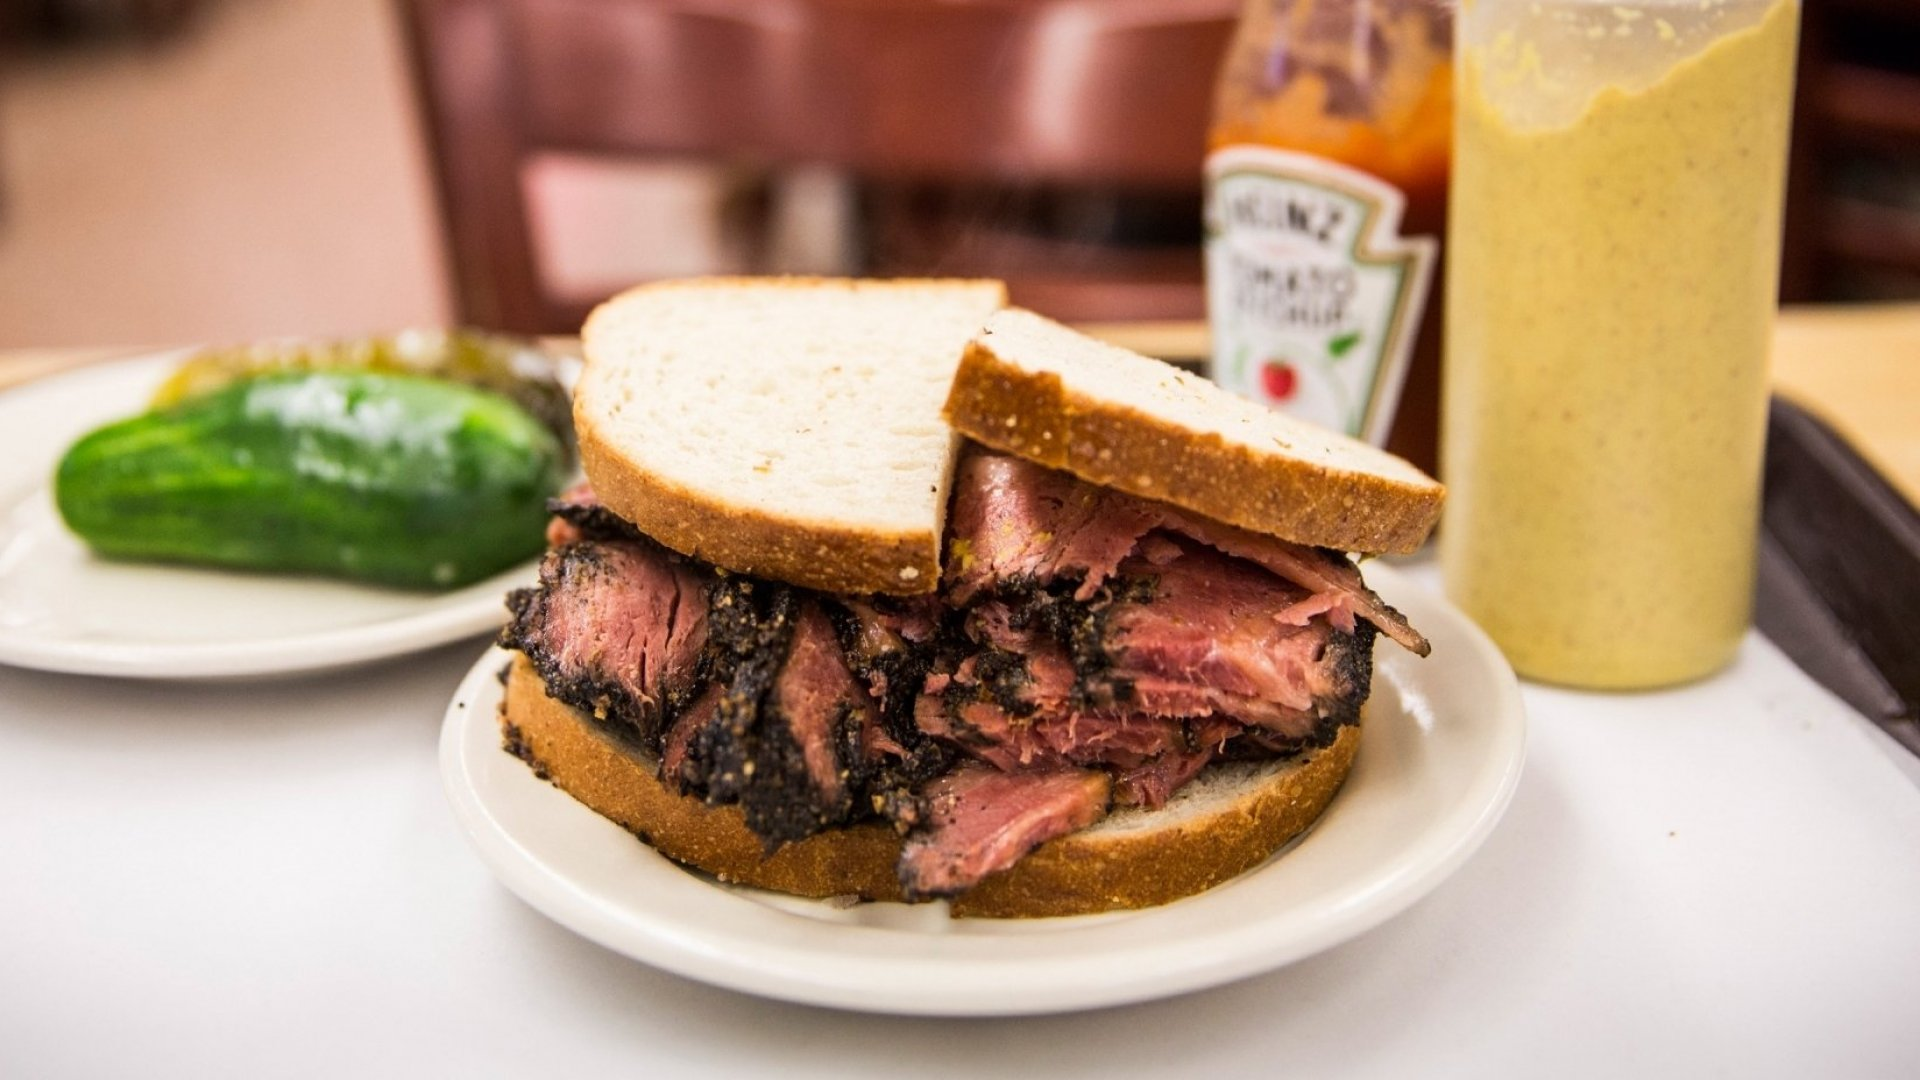 Katz's iconic pastrami sandwich with mustard and pickles.